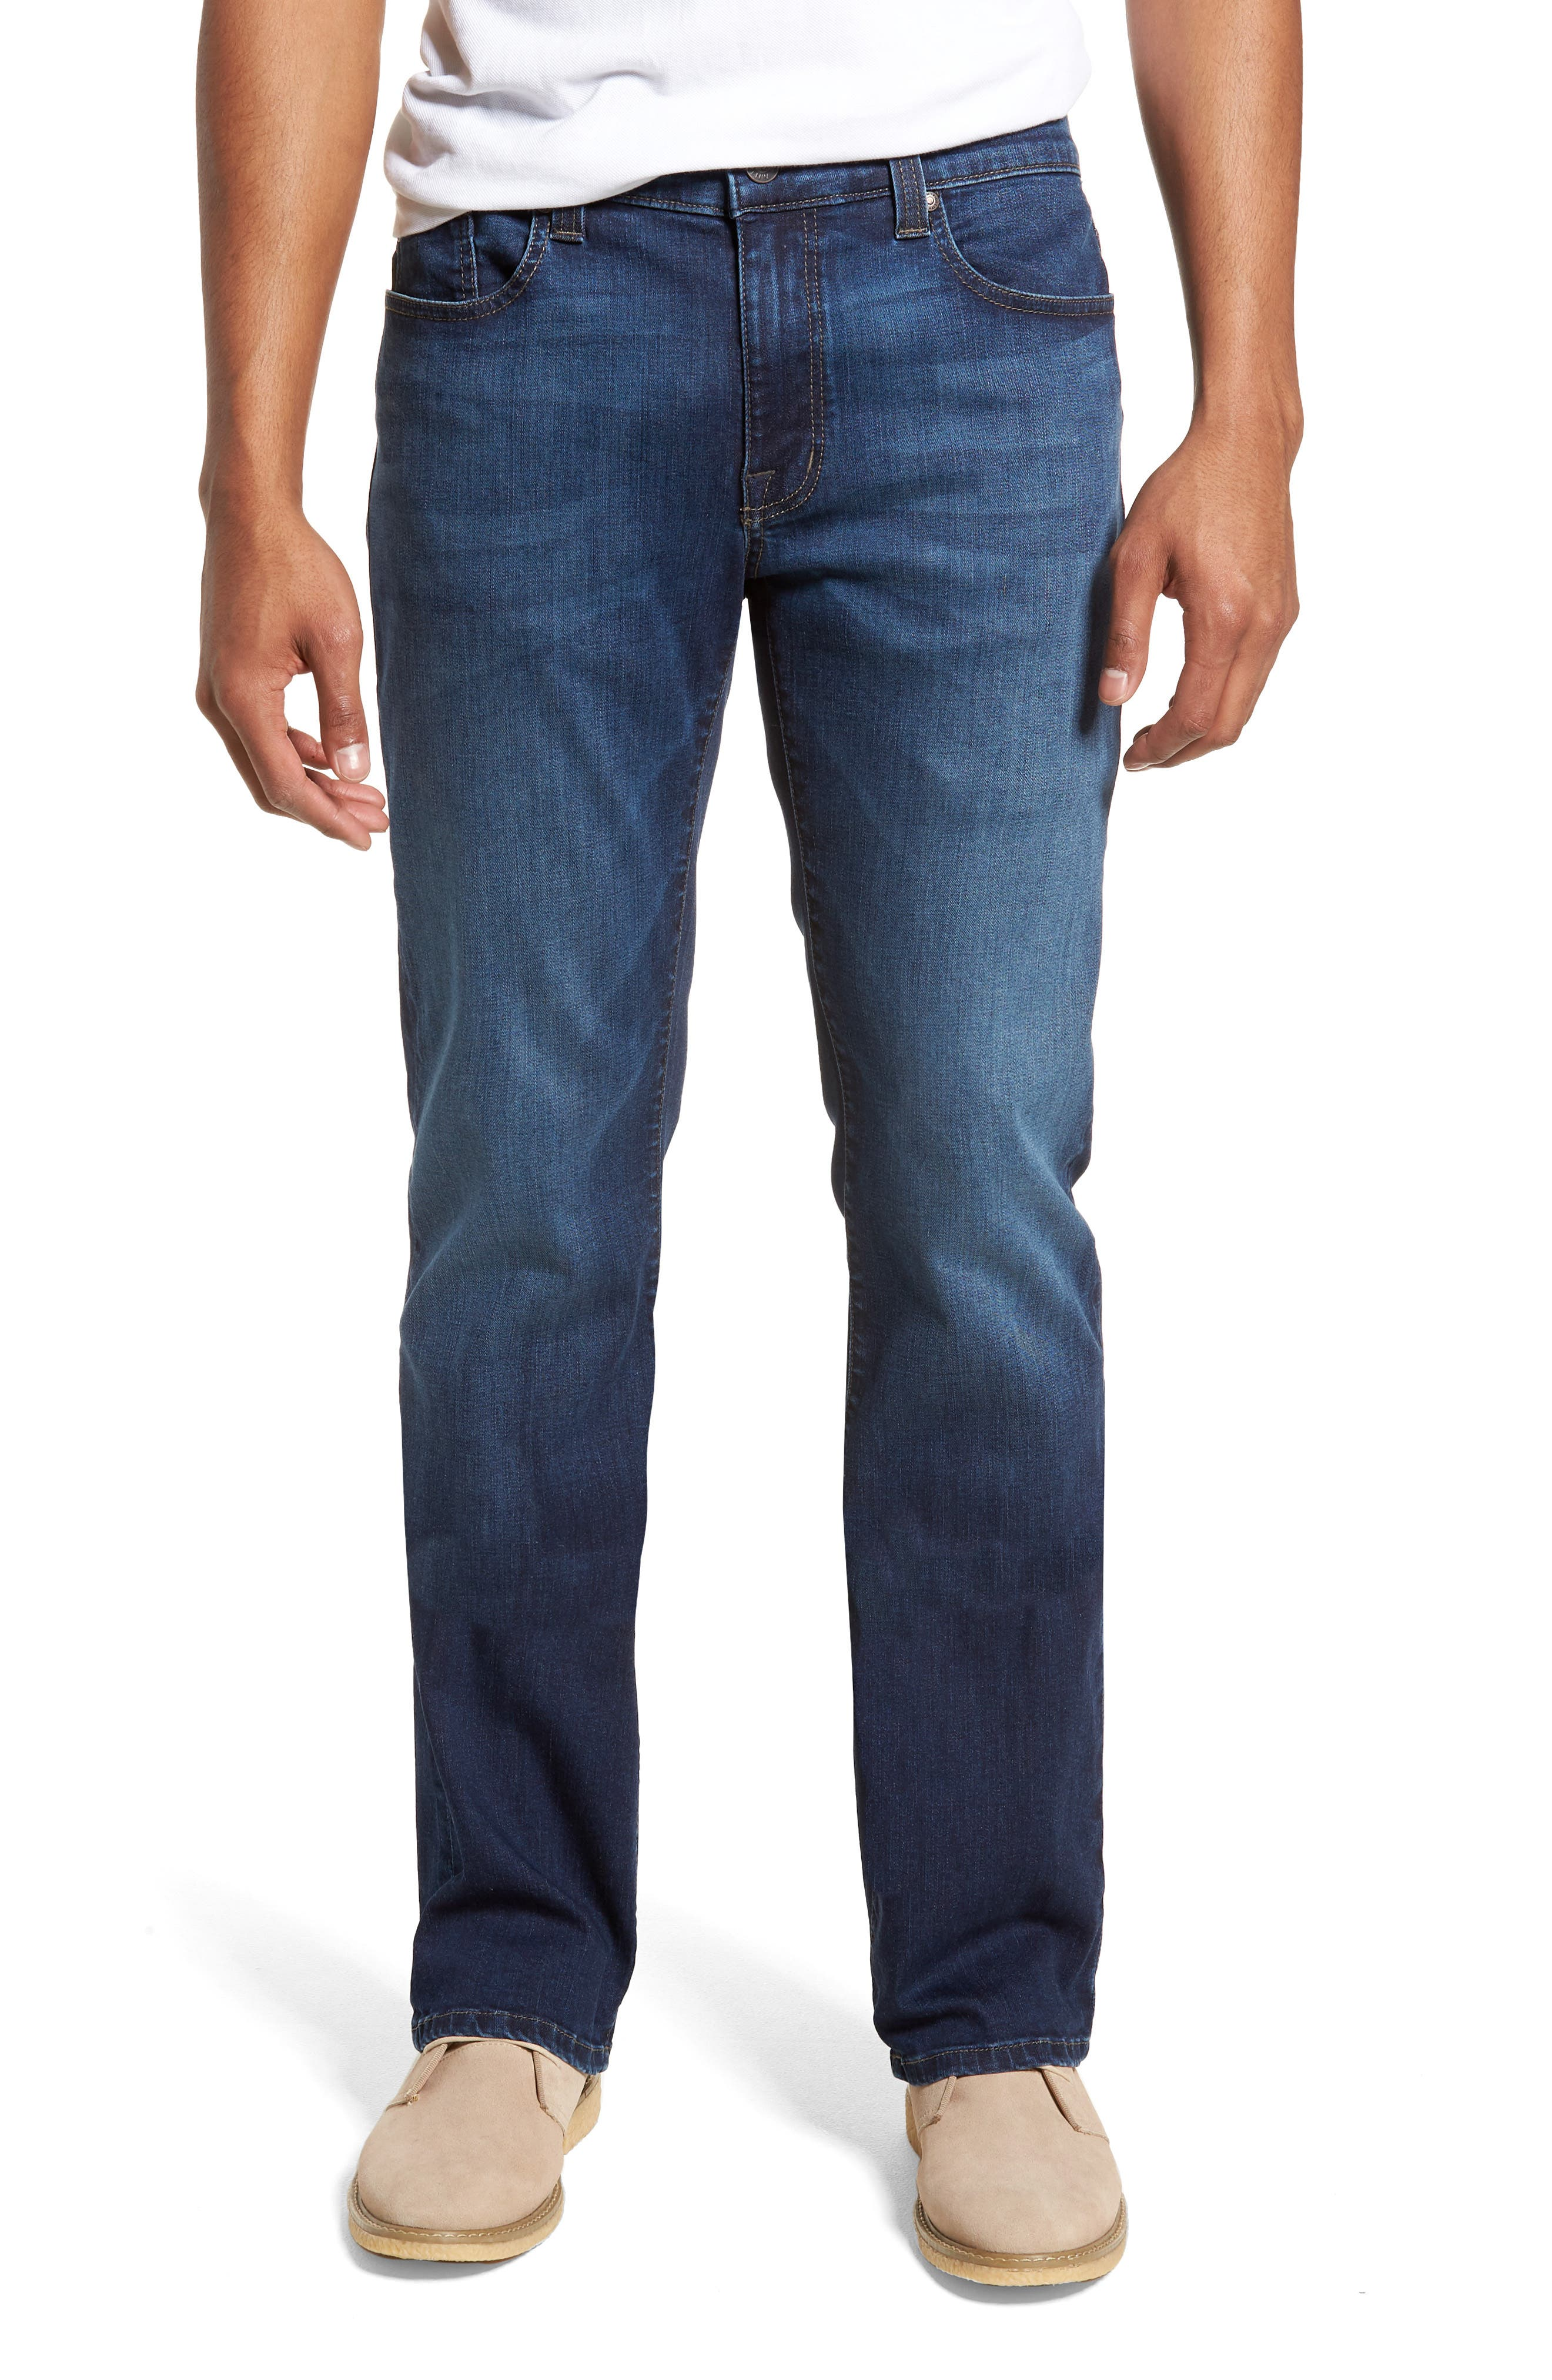 50-11 Relaxed Fit Jeans,                         Main,                         color, CORNELL BLUE